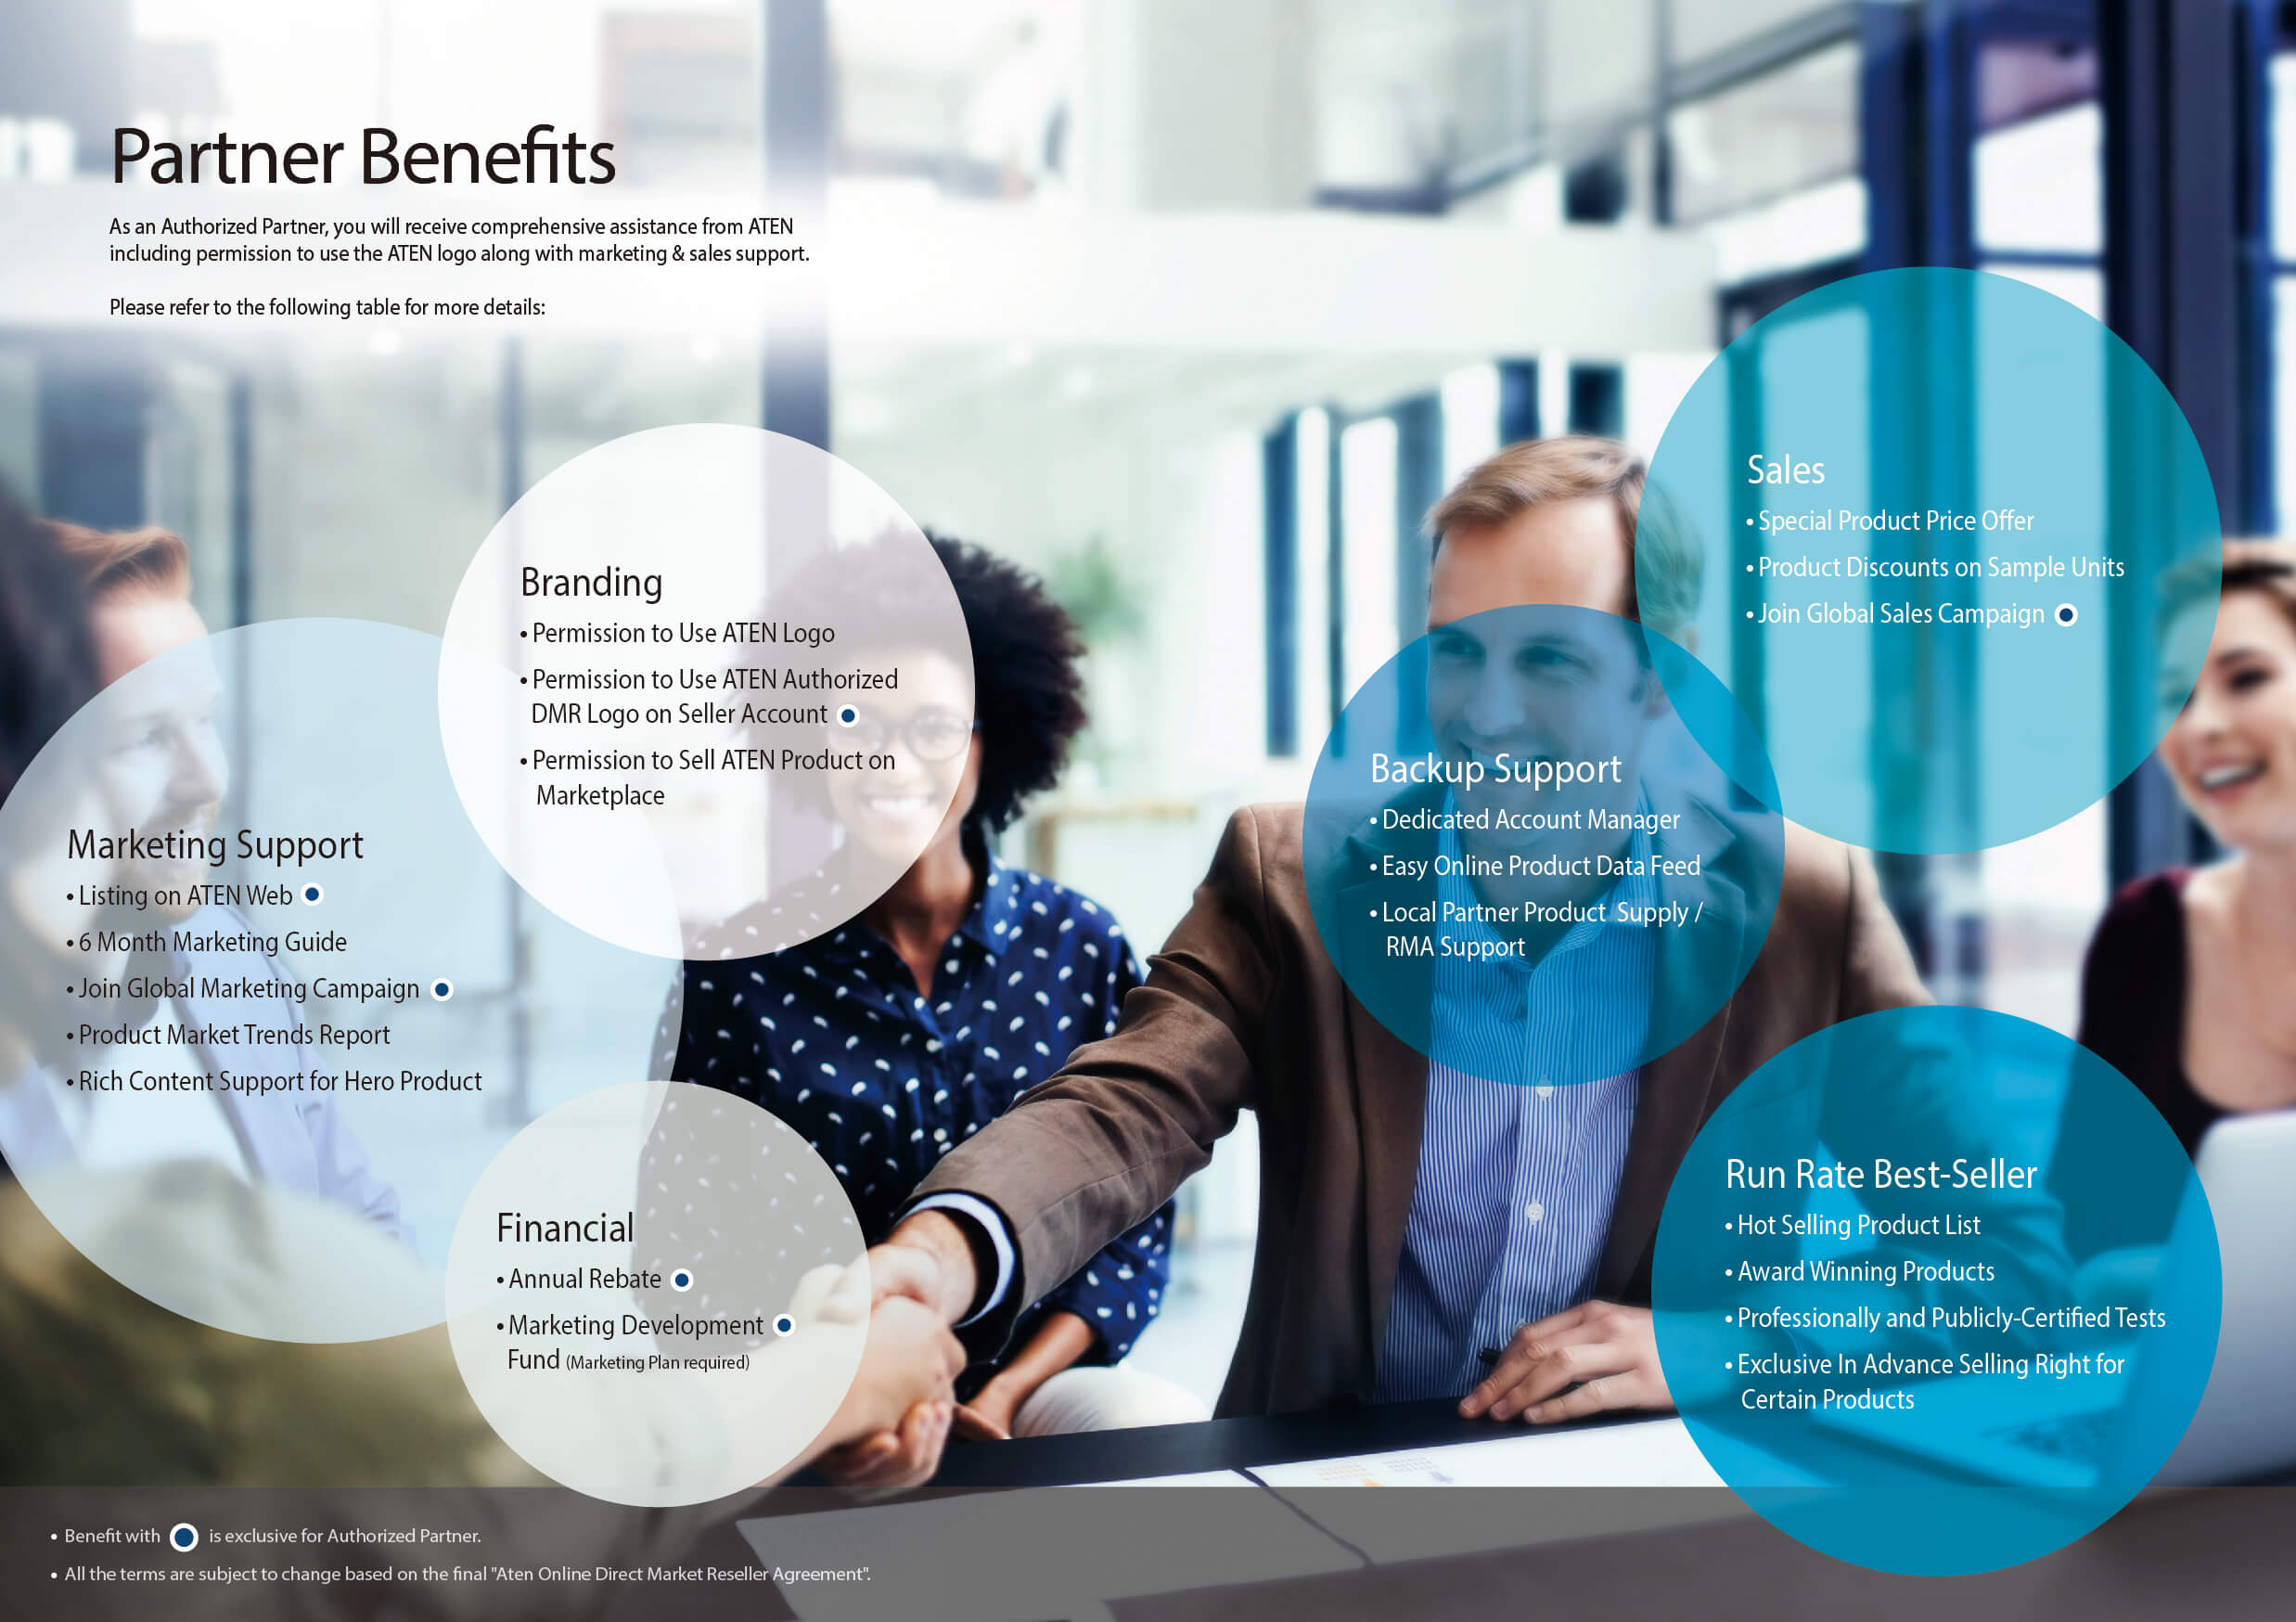 images_Benefits